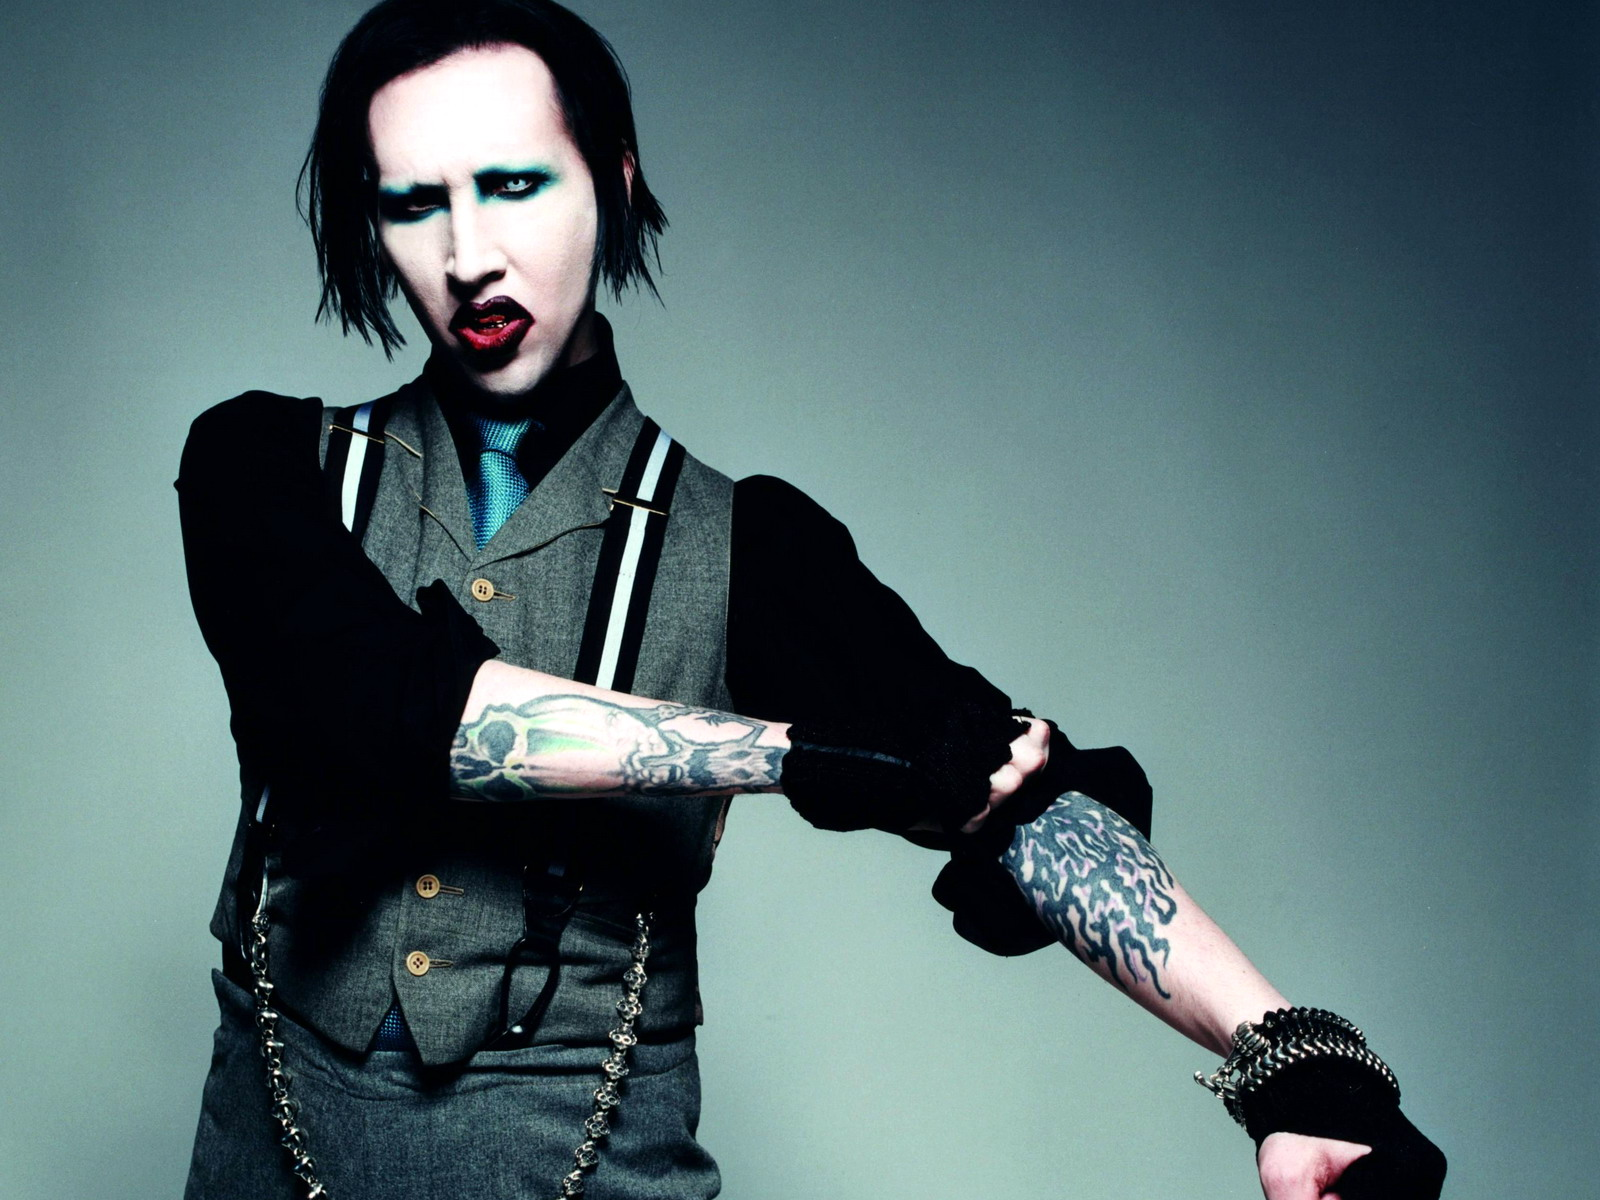 Use Your Fist And Not Your Mouth by Marilyn Manson